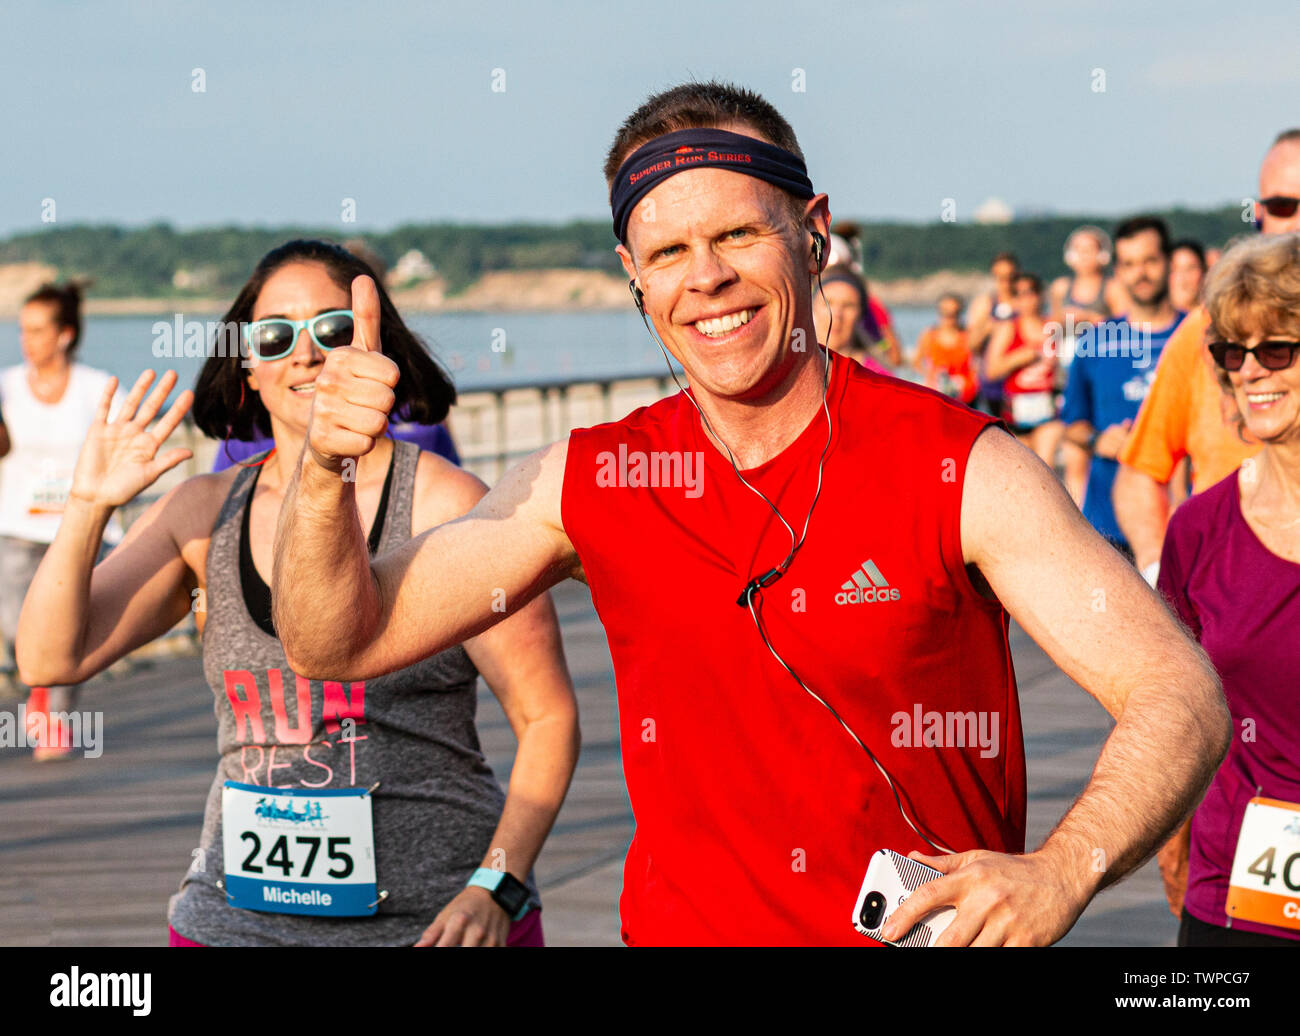 Kings Park, NEw York, USA - 17 June 2019: Runners smiling and waving to the camera during a 10K race on a boardwalk at the beach. - Stock Image